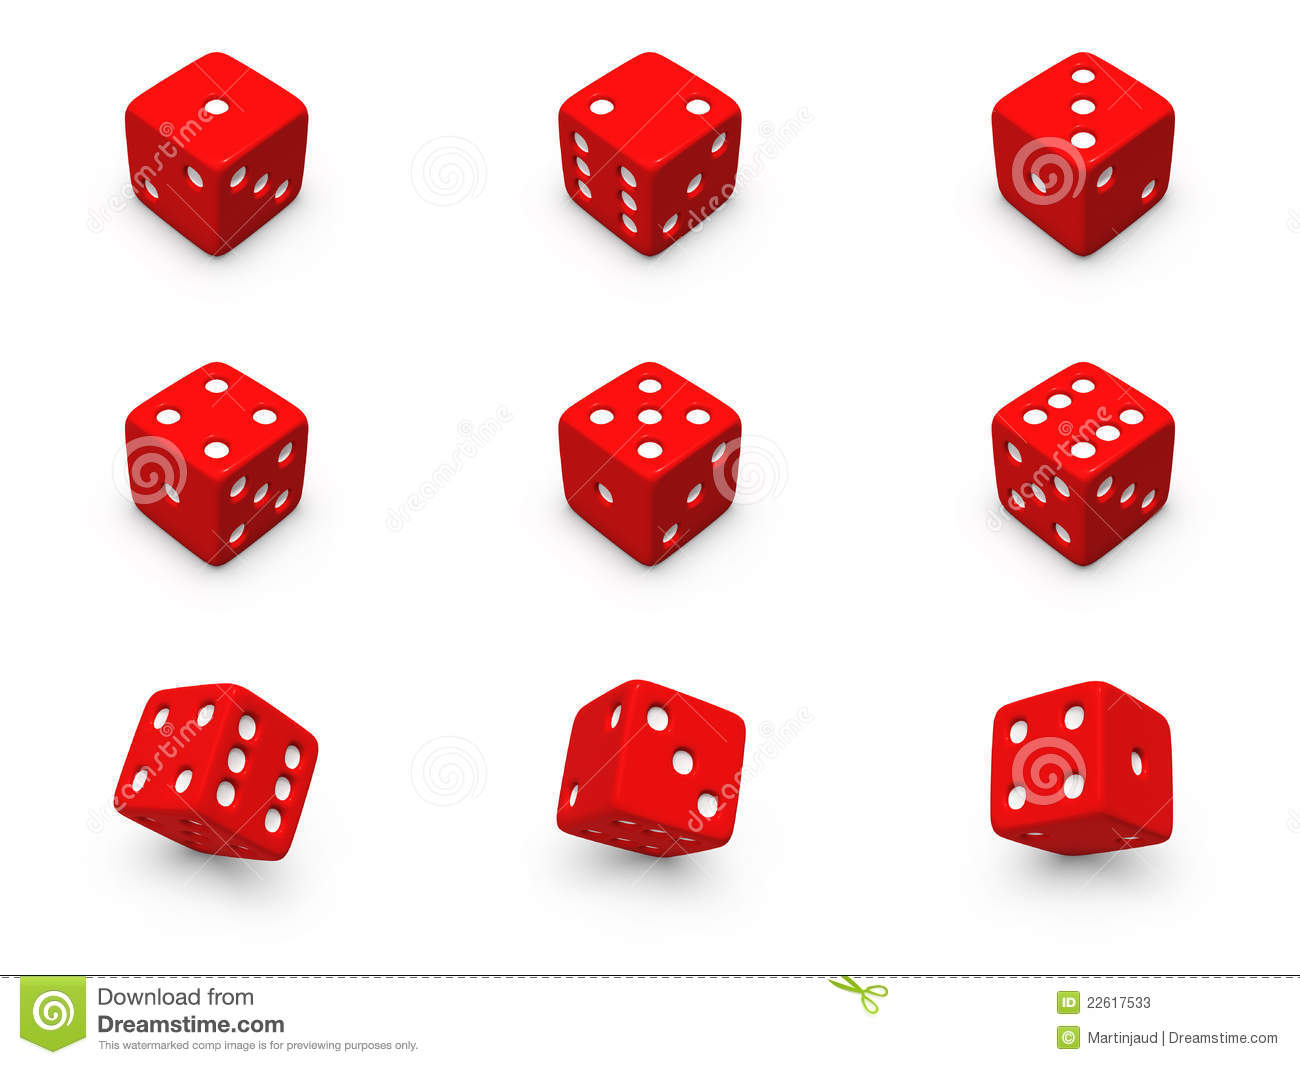 Red Dice Clip Art.